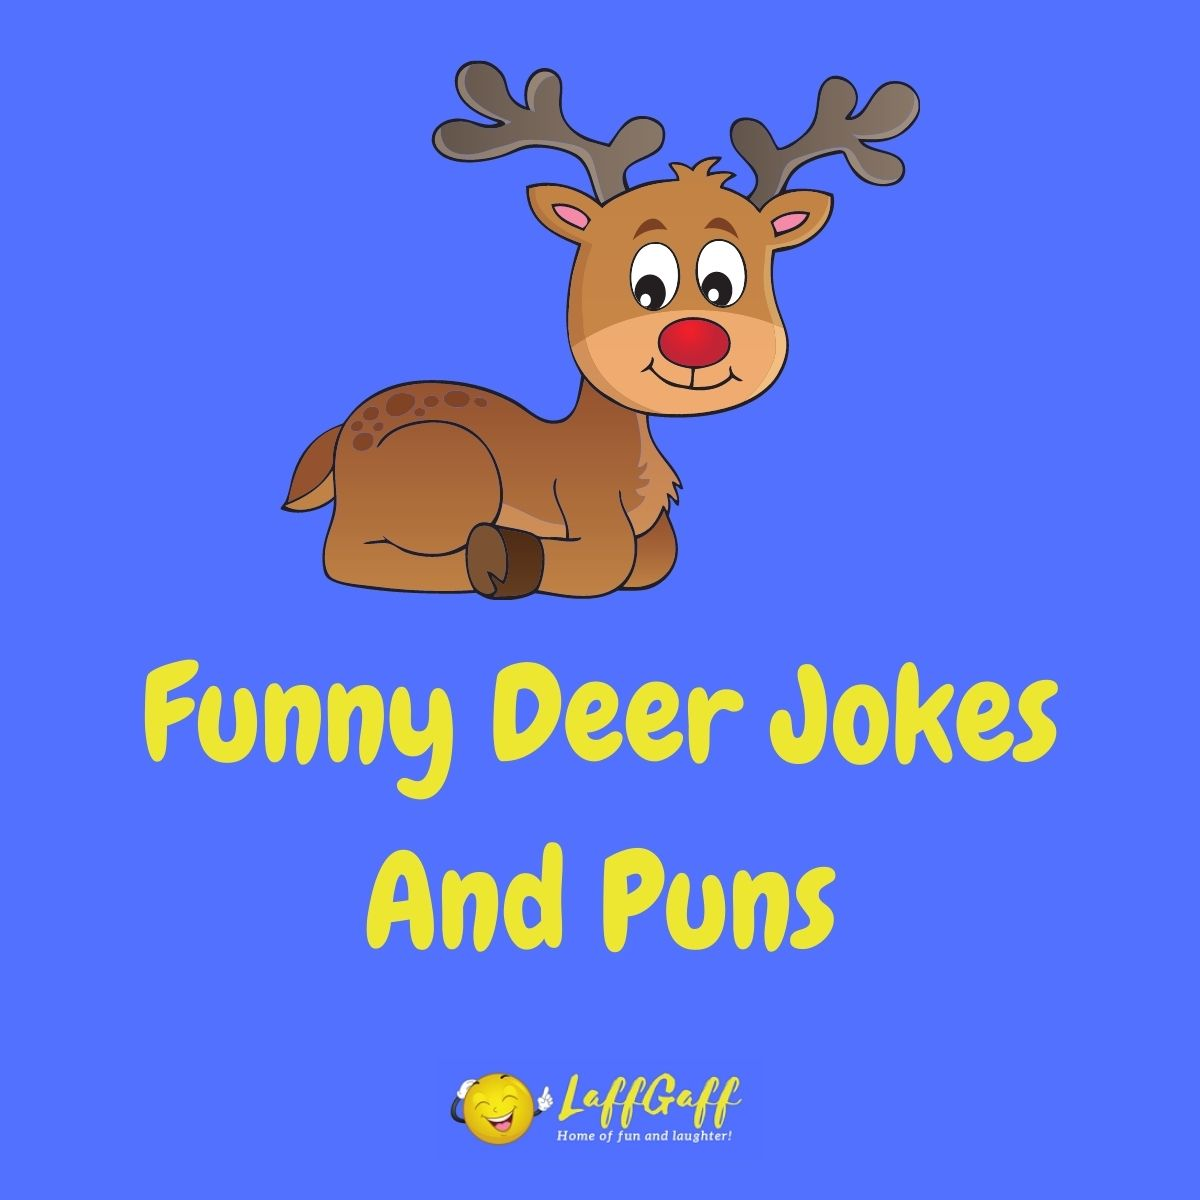 Featured image for a page of funny deer jokes and puns.